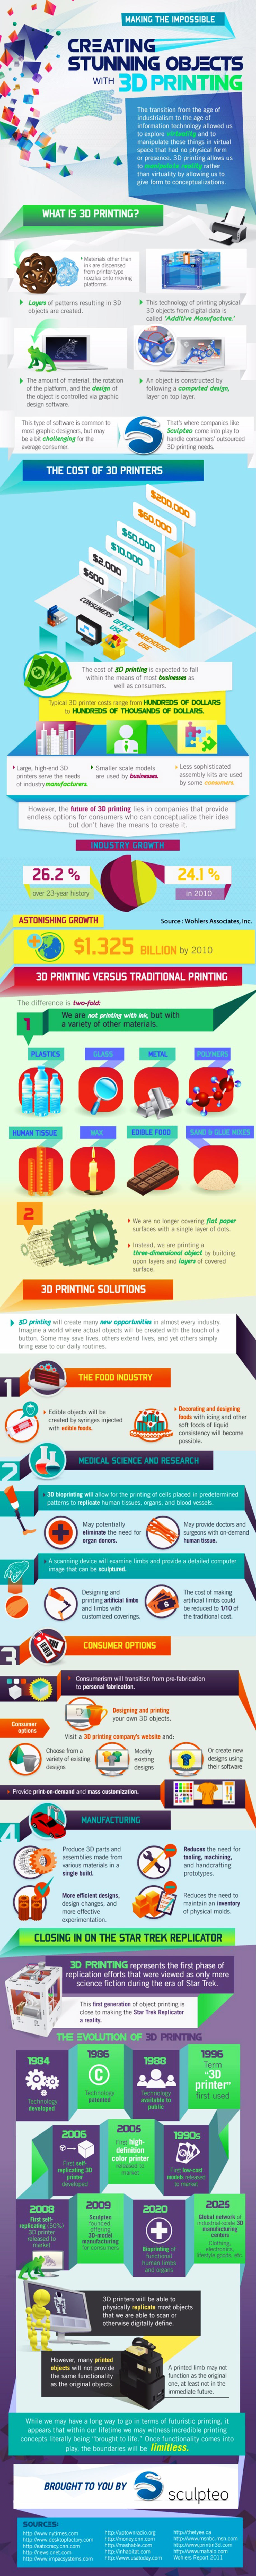 Creating Stunning Objects with 3D Printing Infographic